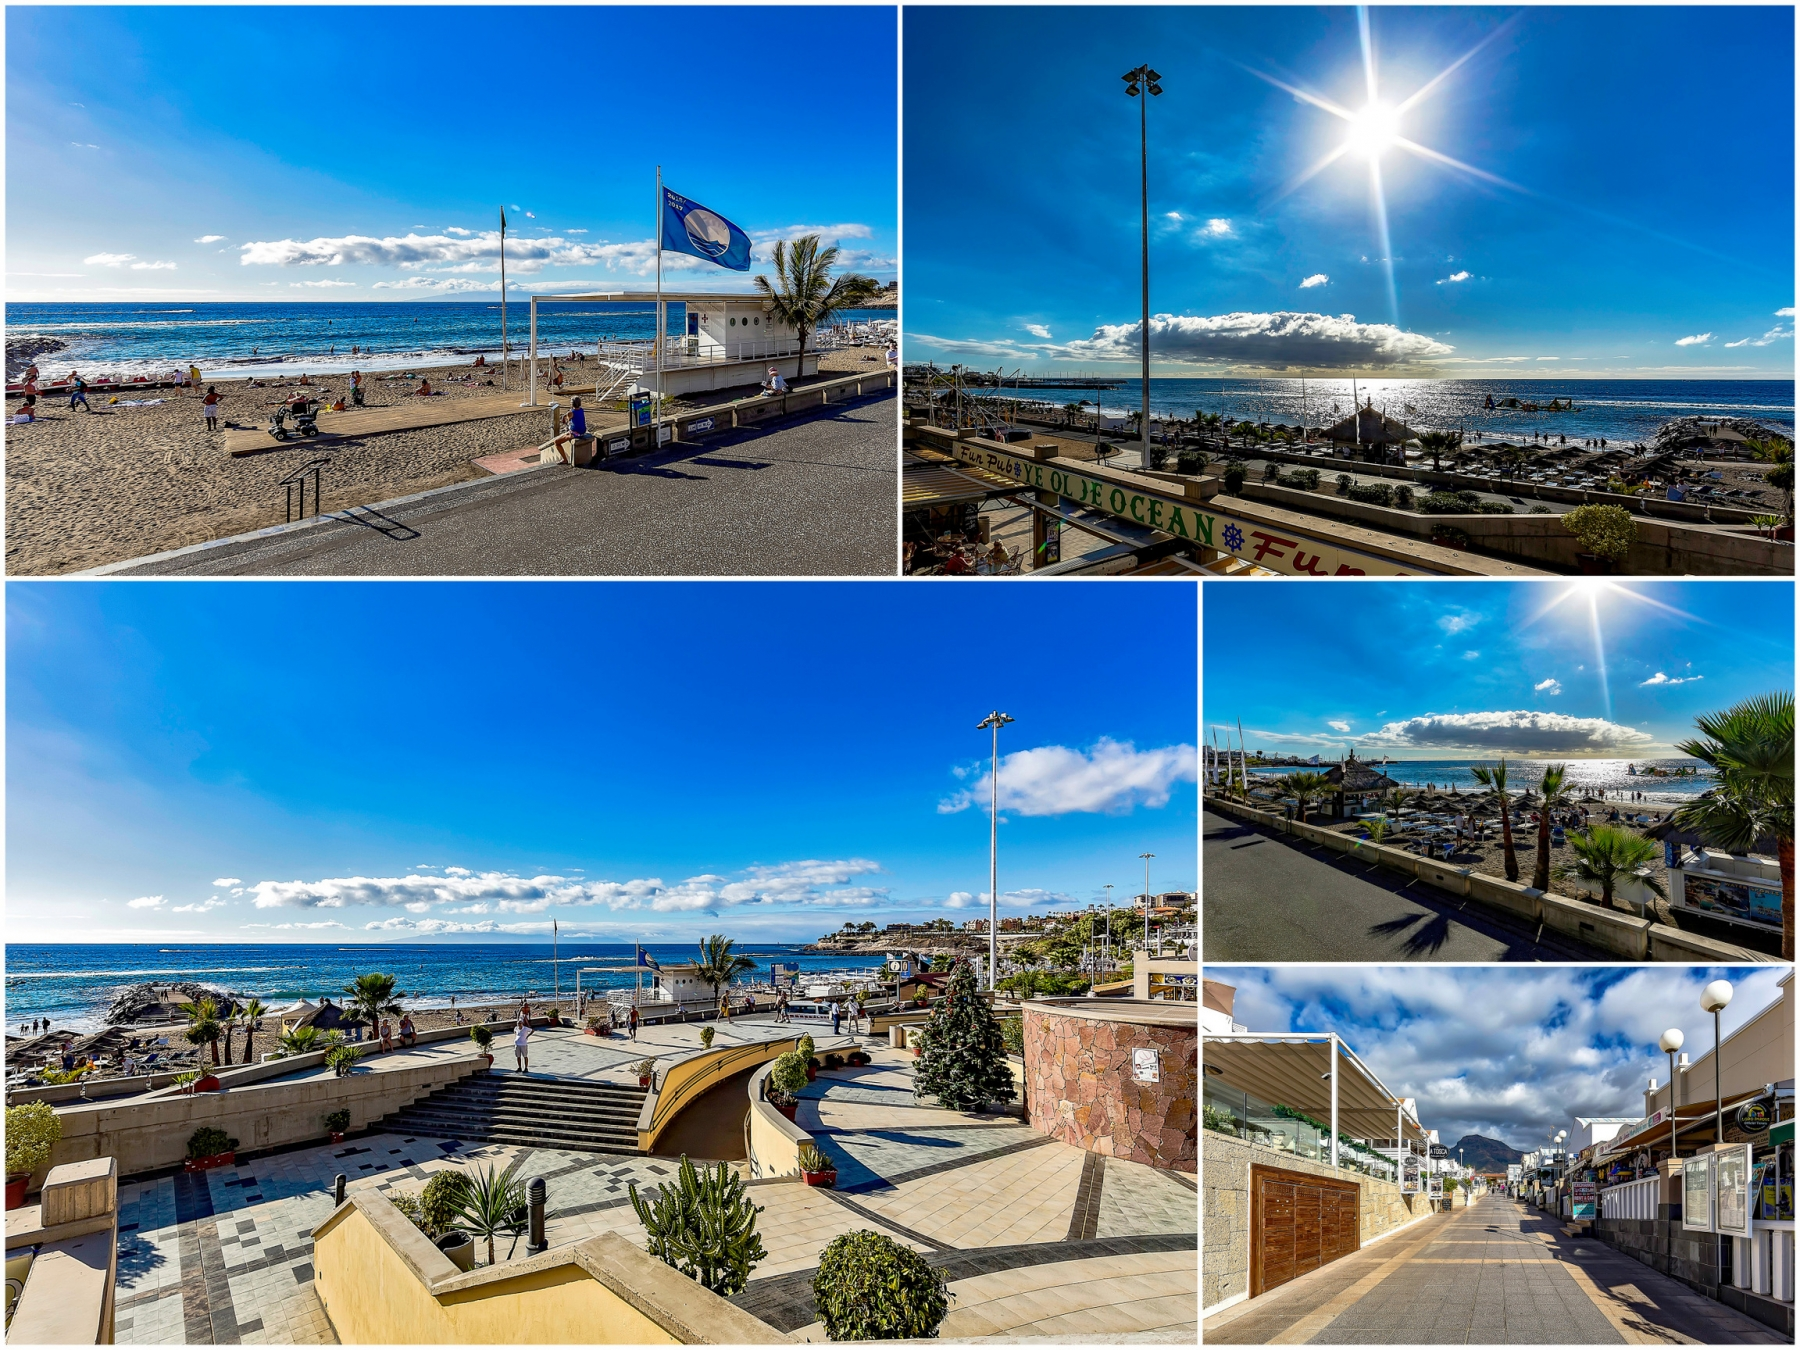 Properties for Sale in Tenerife, Canary Islands, Spain | SylkWayStar Real Estate. 1 bedroom apartment Yucca Park. Image-22622